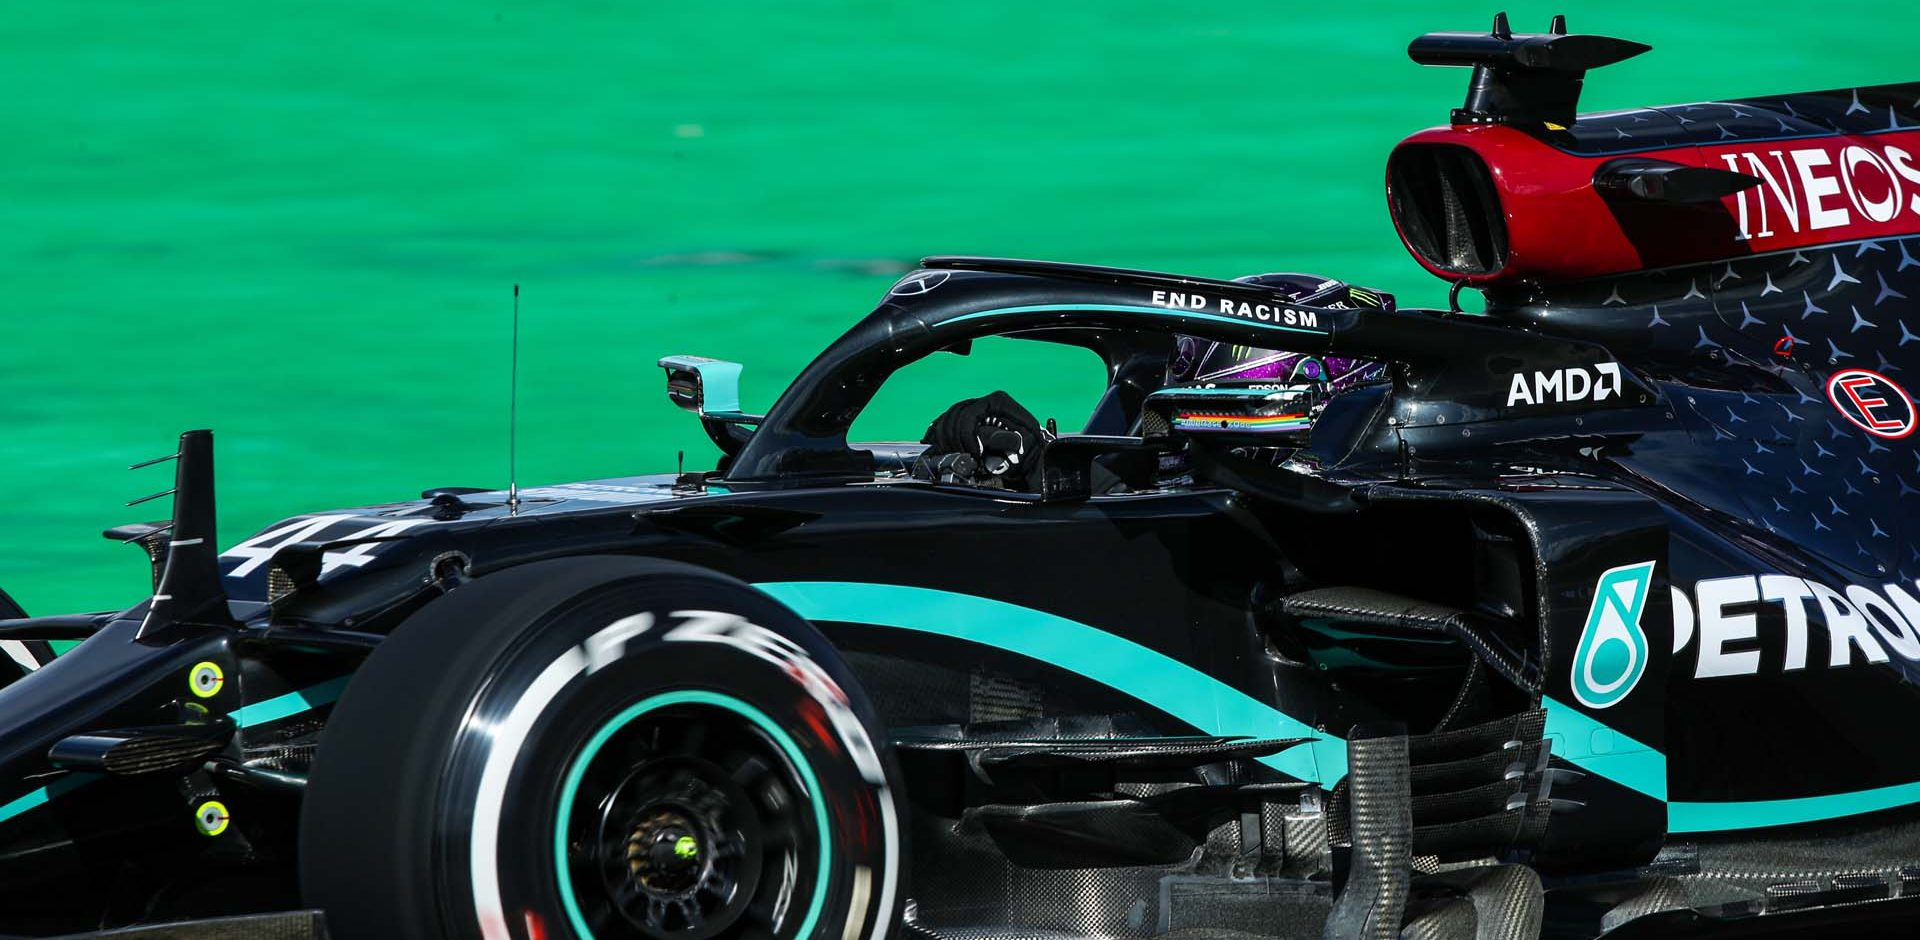 ALGARVE INTERNATIONAL CIRCUIT, PORTUGAL - OCTOBER 23: Lewis Hamilton, Mercedes F1 W11 EQ Performance during the Portuguese GP at Algarve International Circuit on Friday October 23, 2020, Portugal. (Photo by Charles Coates / LAT Images)